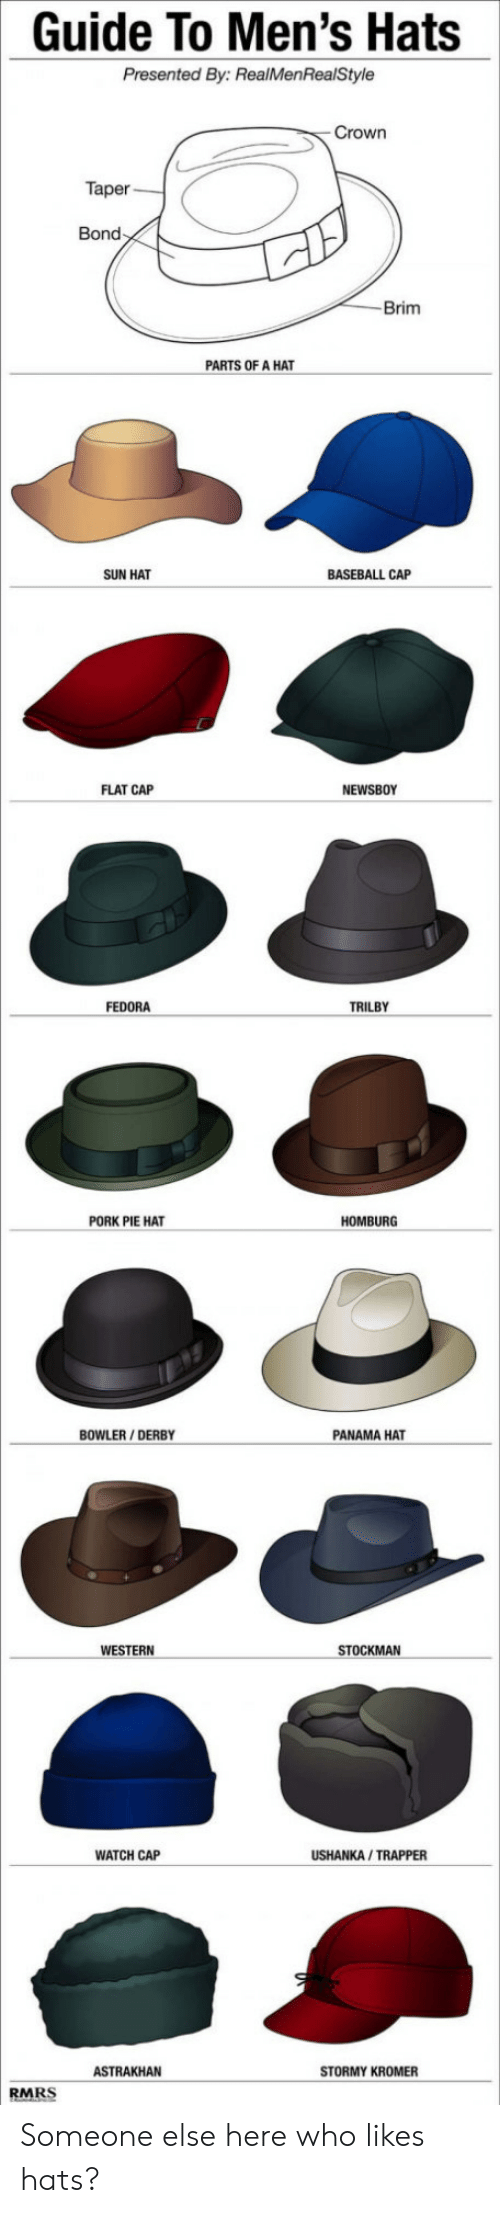 Baseball, Fedora, and Panama: Guide To Men's Hats  Presented By: RealMenRealStyle  Crown  Taper  Brim  PARTS OF A HAT  SUN HAT  BASEBALL CAP  FLAT CAP  NEWSBOY  FEDORA  TRILBY  PORK PIE HAT  HOMBURG  BOWLER/DERBY  PANAMA HAT  WESTERN  STOCKMAN  WATCH CAP  USHANKA/ TRAPPER  ASTRAKHAN  STORMY KROMER  RMRS Someone else here who likes hats?